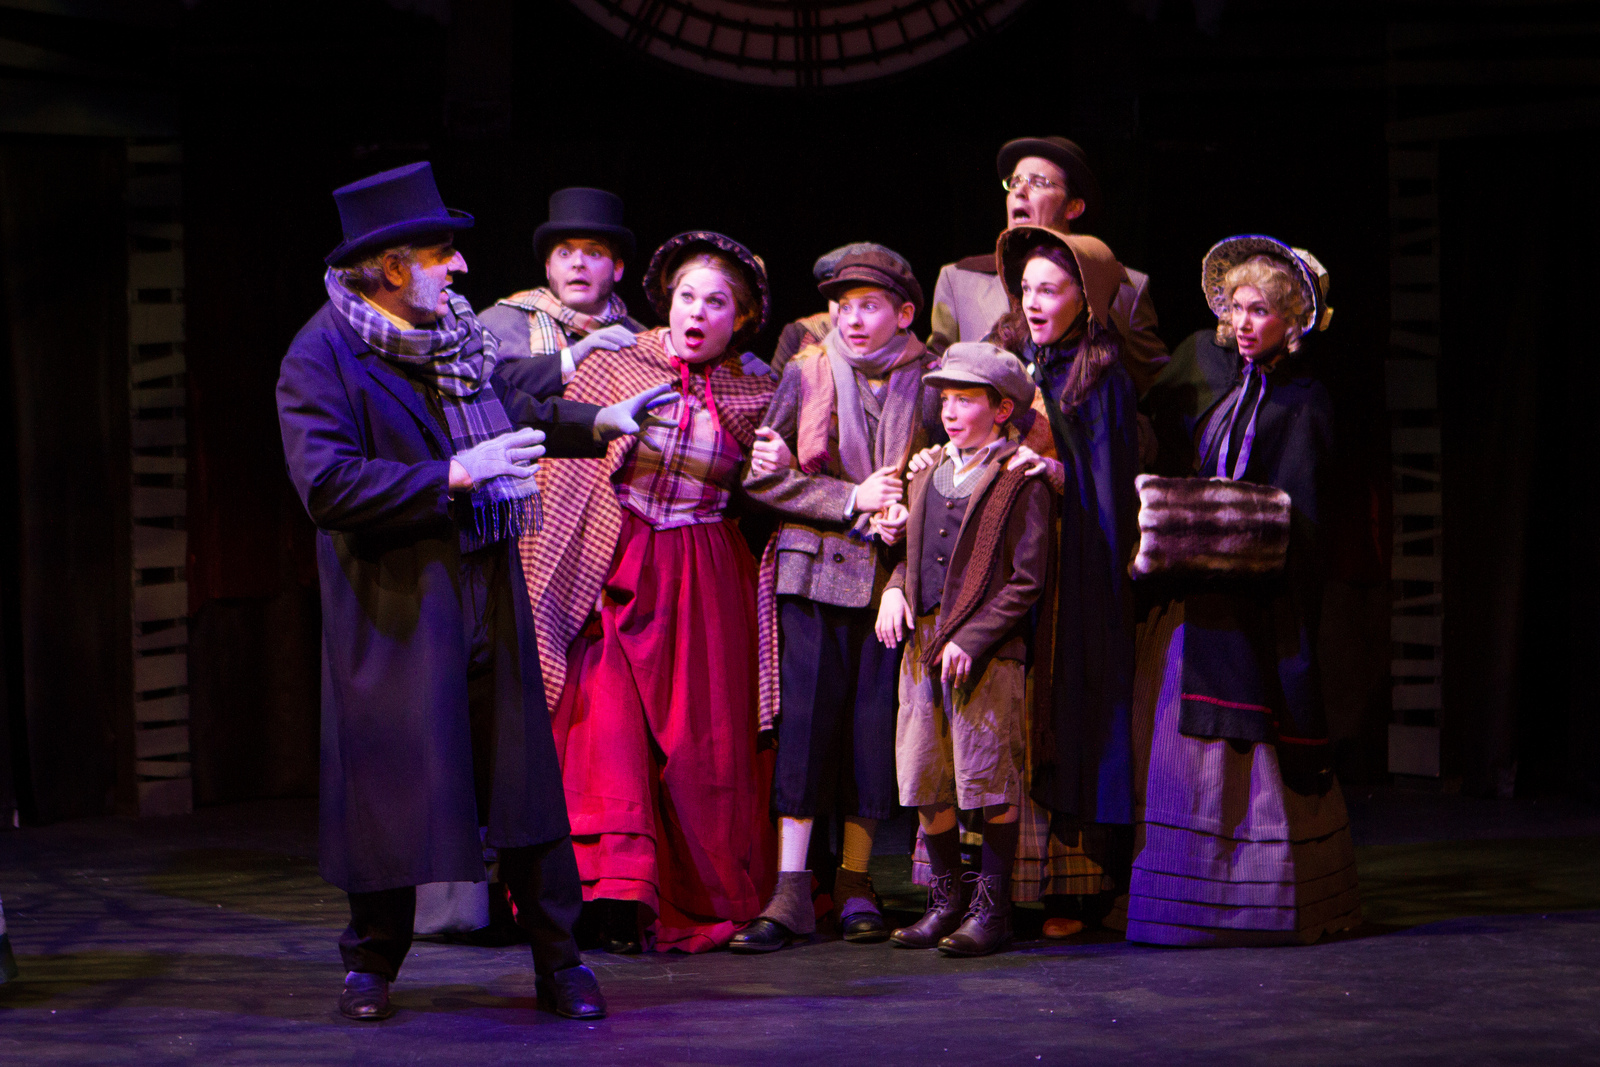 """The cast of the 2013 production of """"A Christmas Carol"""" at Southwest Shakespeare Company. (Photo by Devon C. Adams)"""